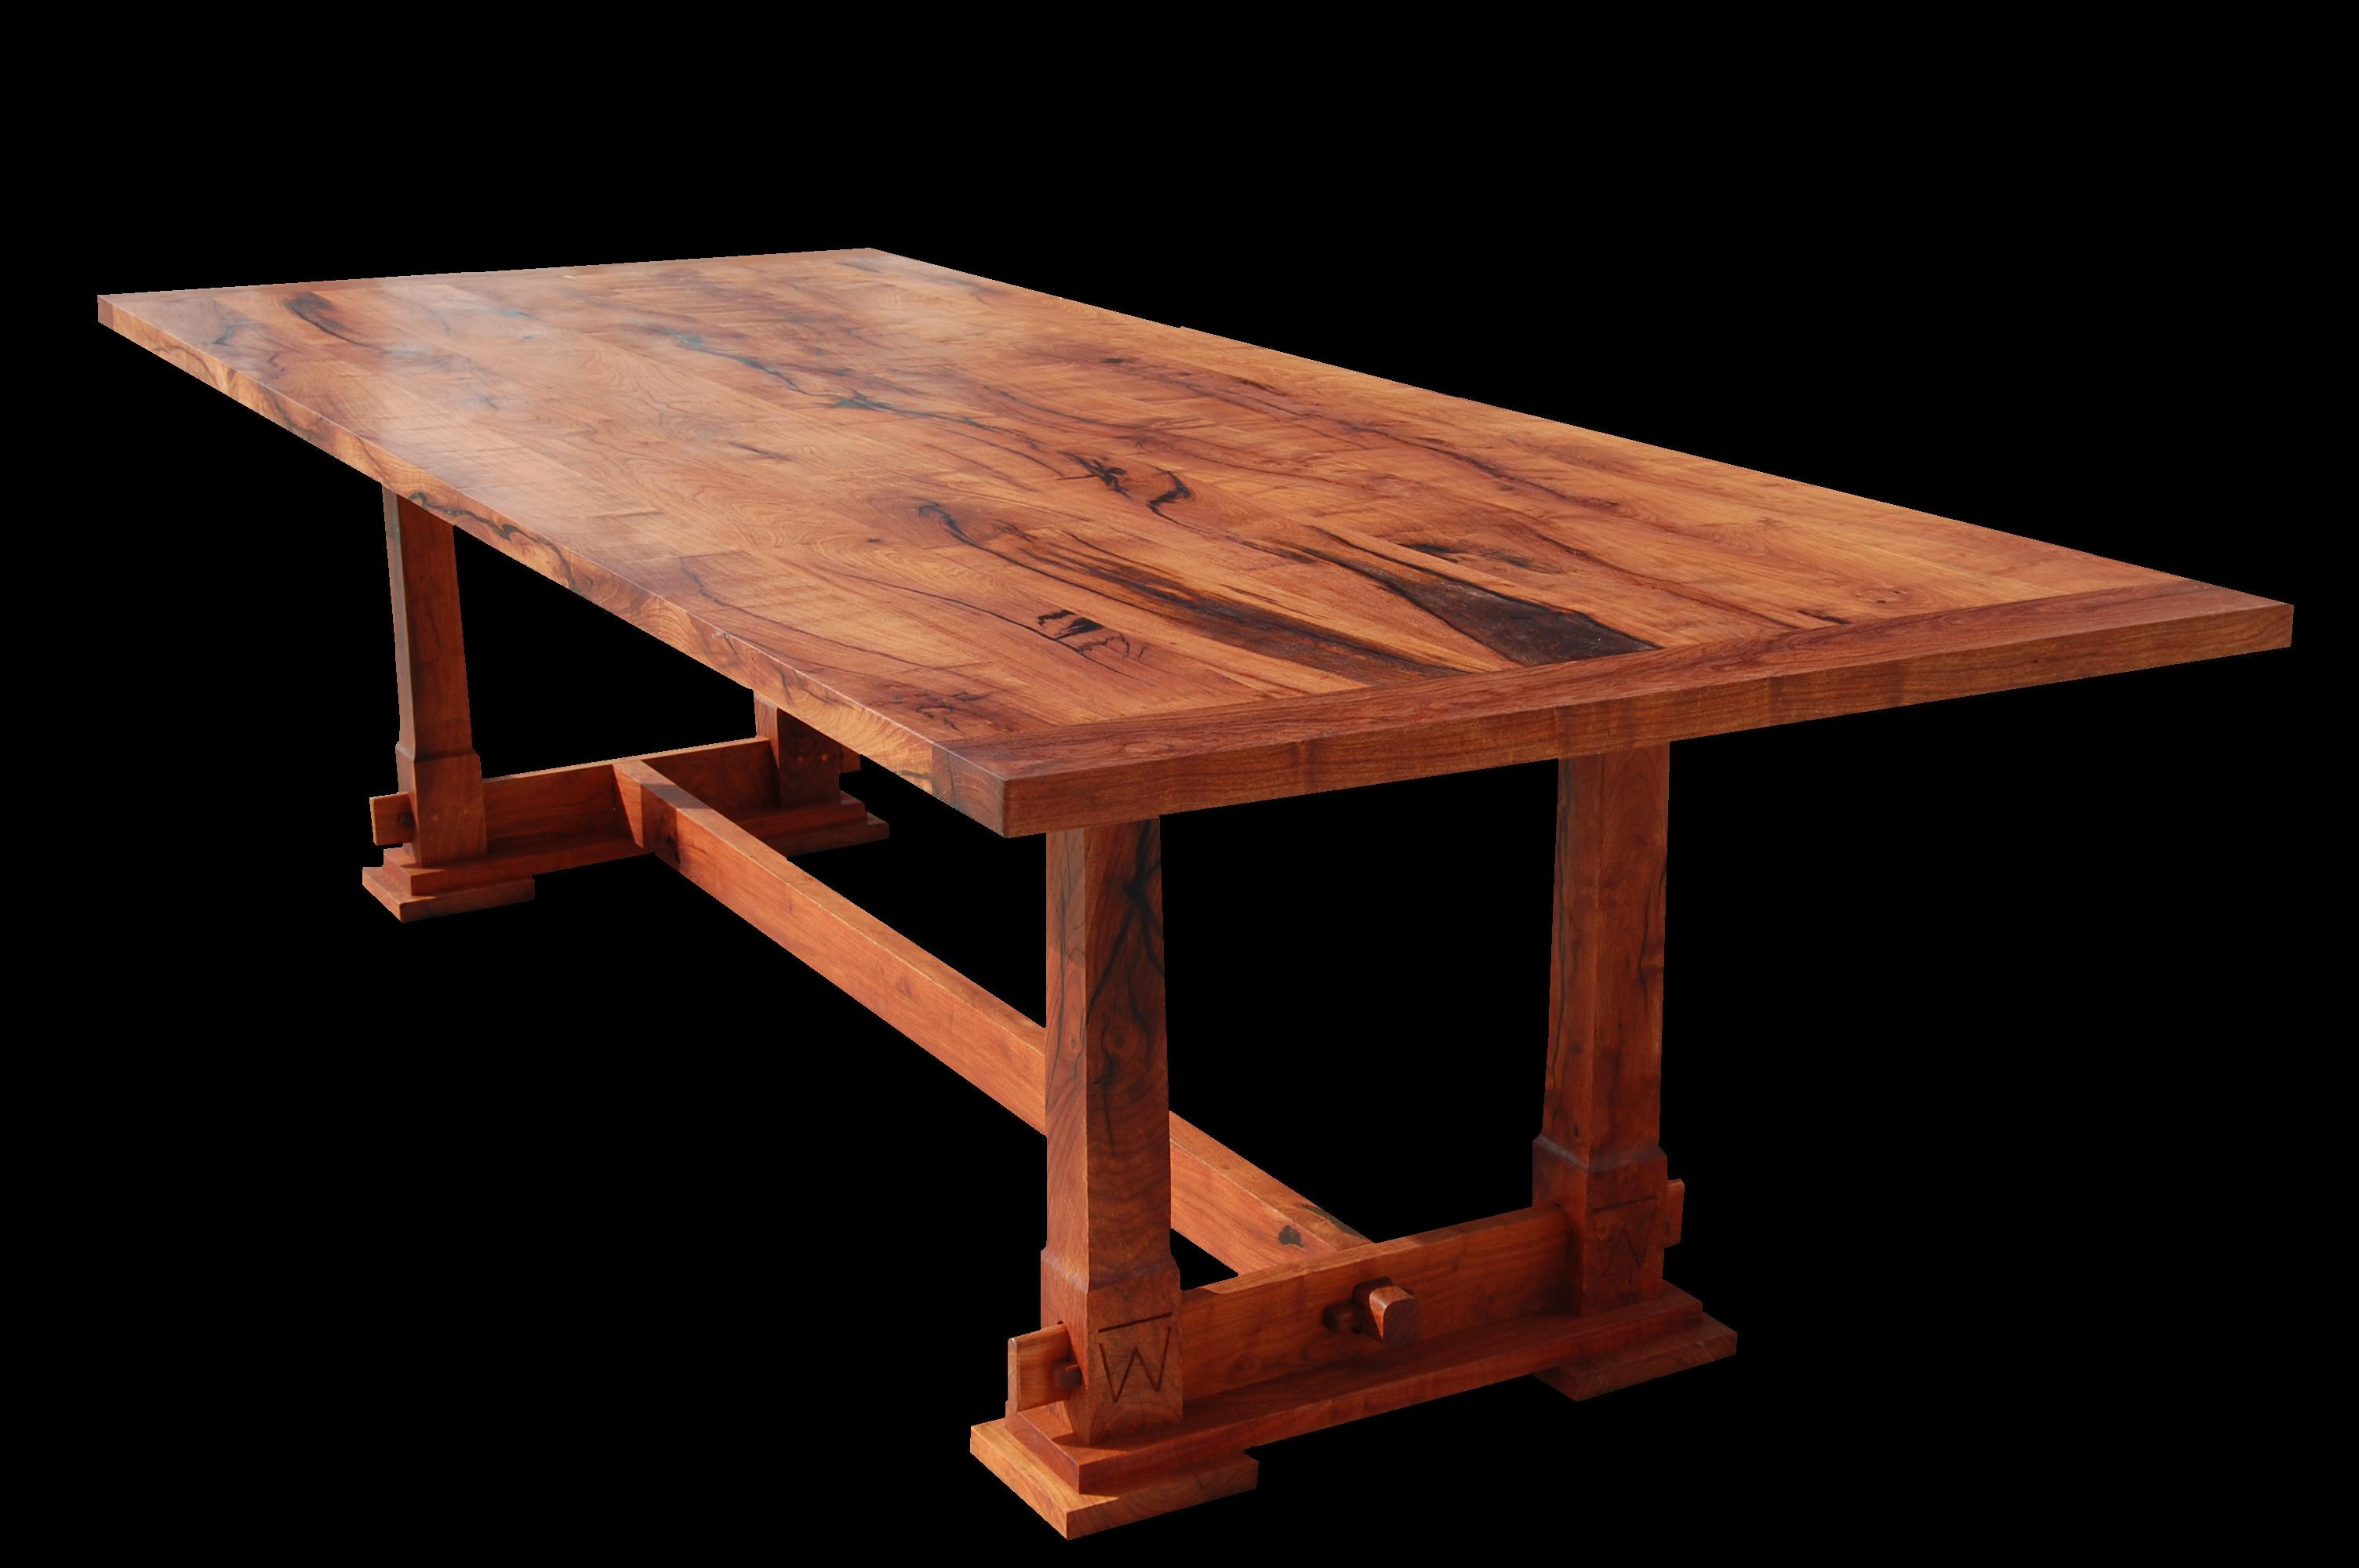 Custom Mesquite Wood Furniture  Countertops  Bars in